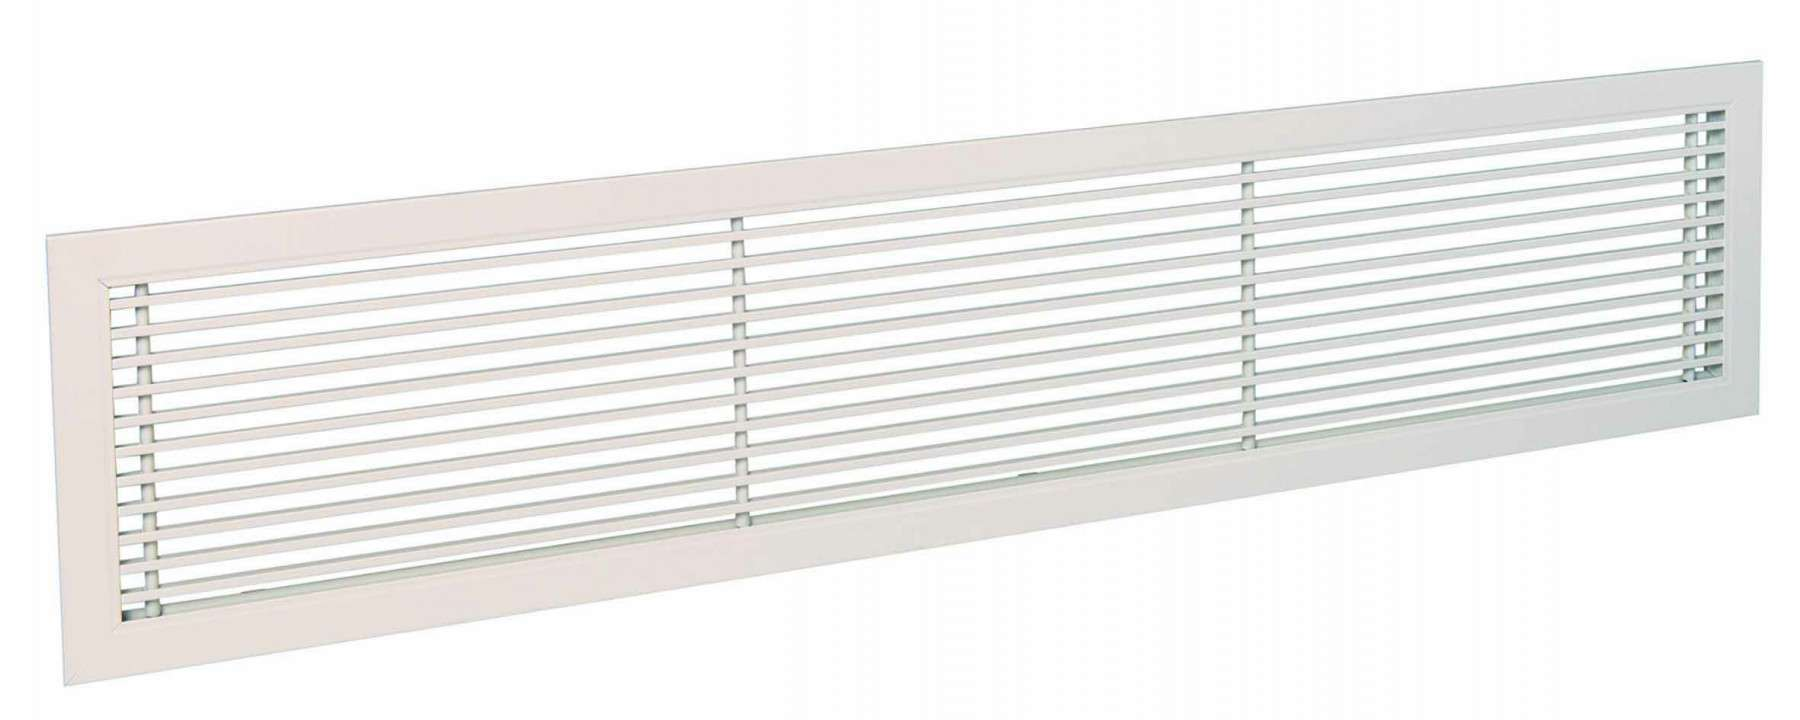 Grilles intérieures GRIDLINED WALL F3 500X100 RAL9010 Aldes 11050565